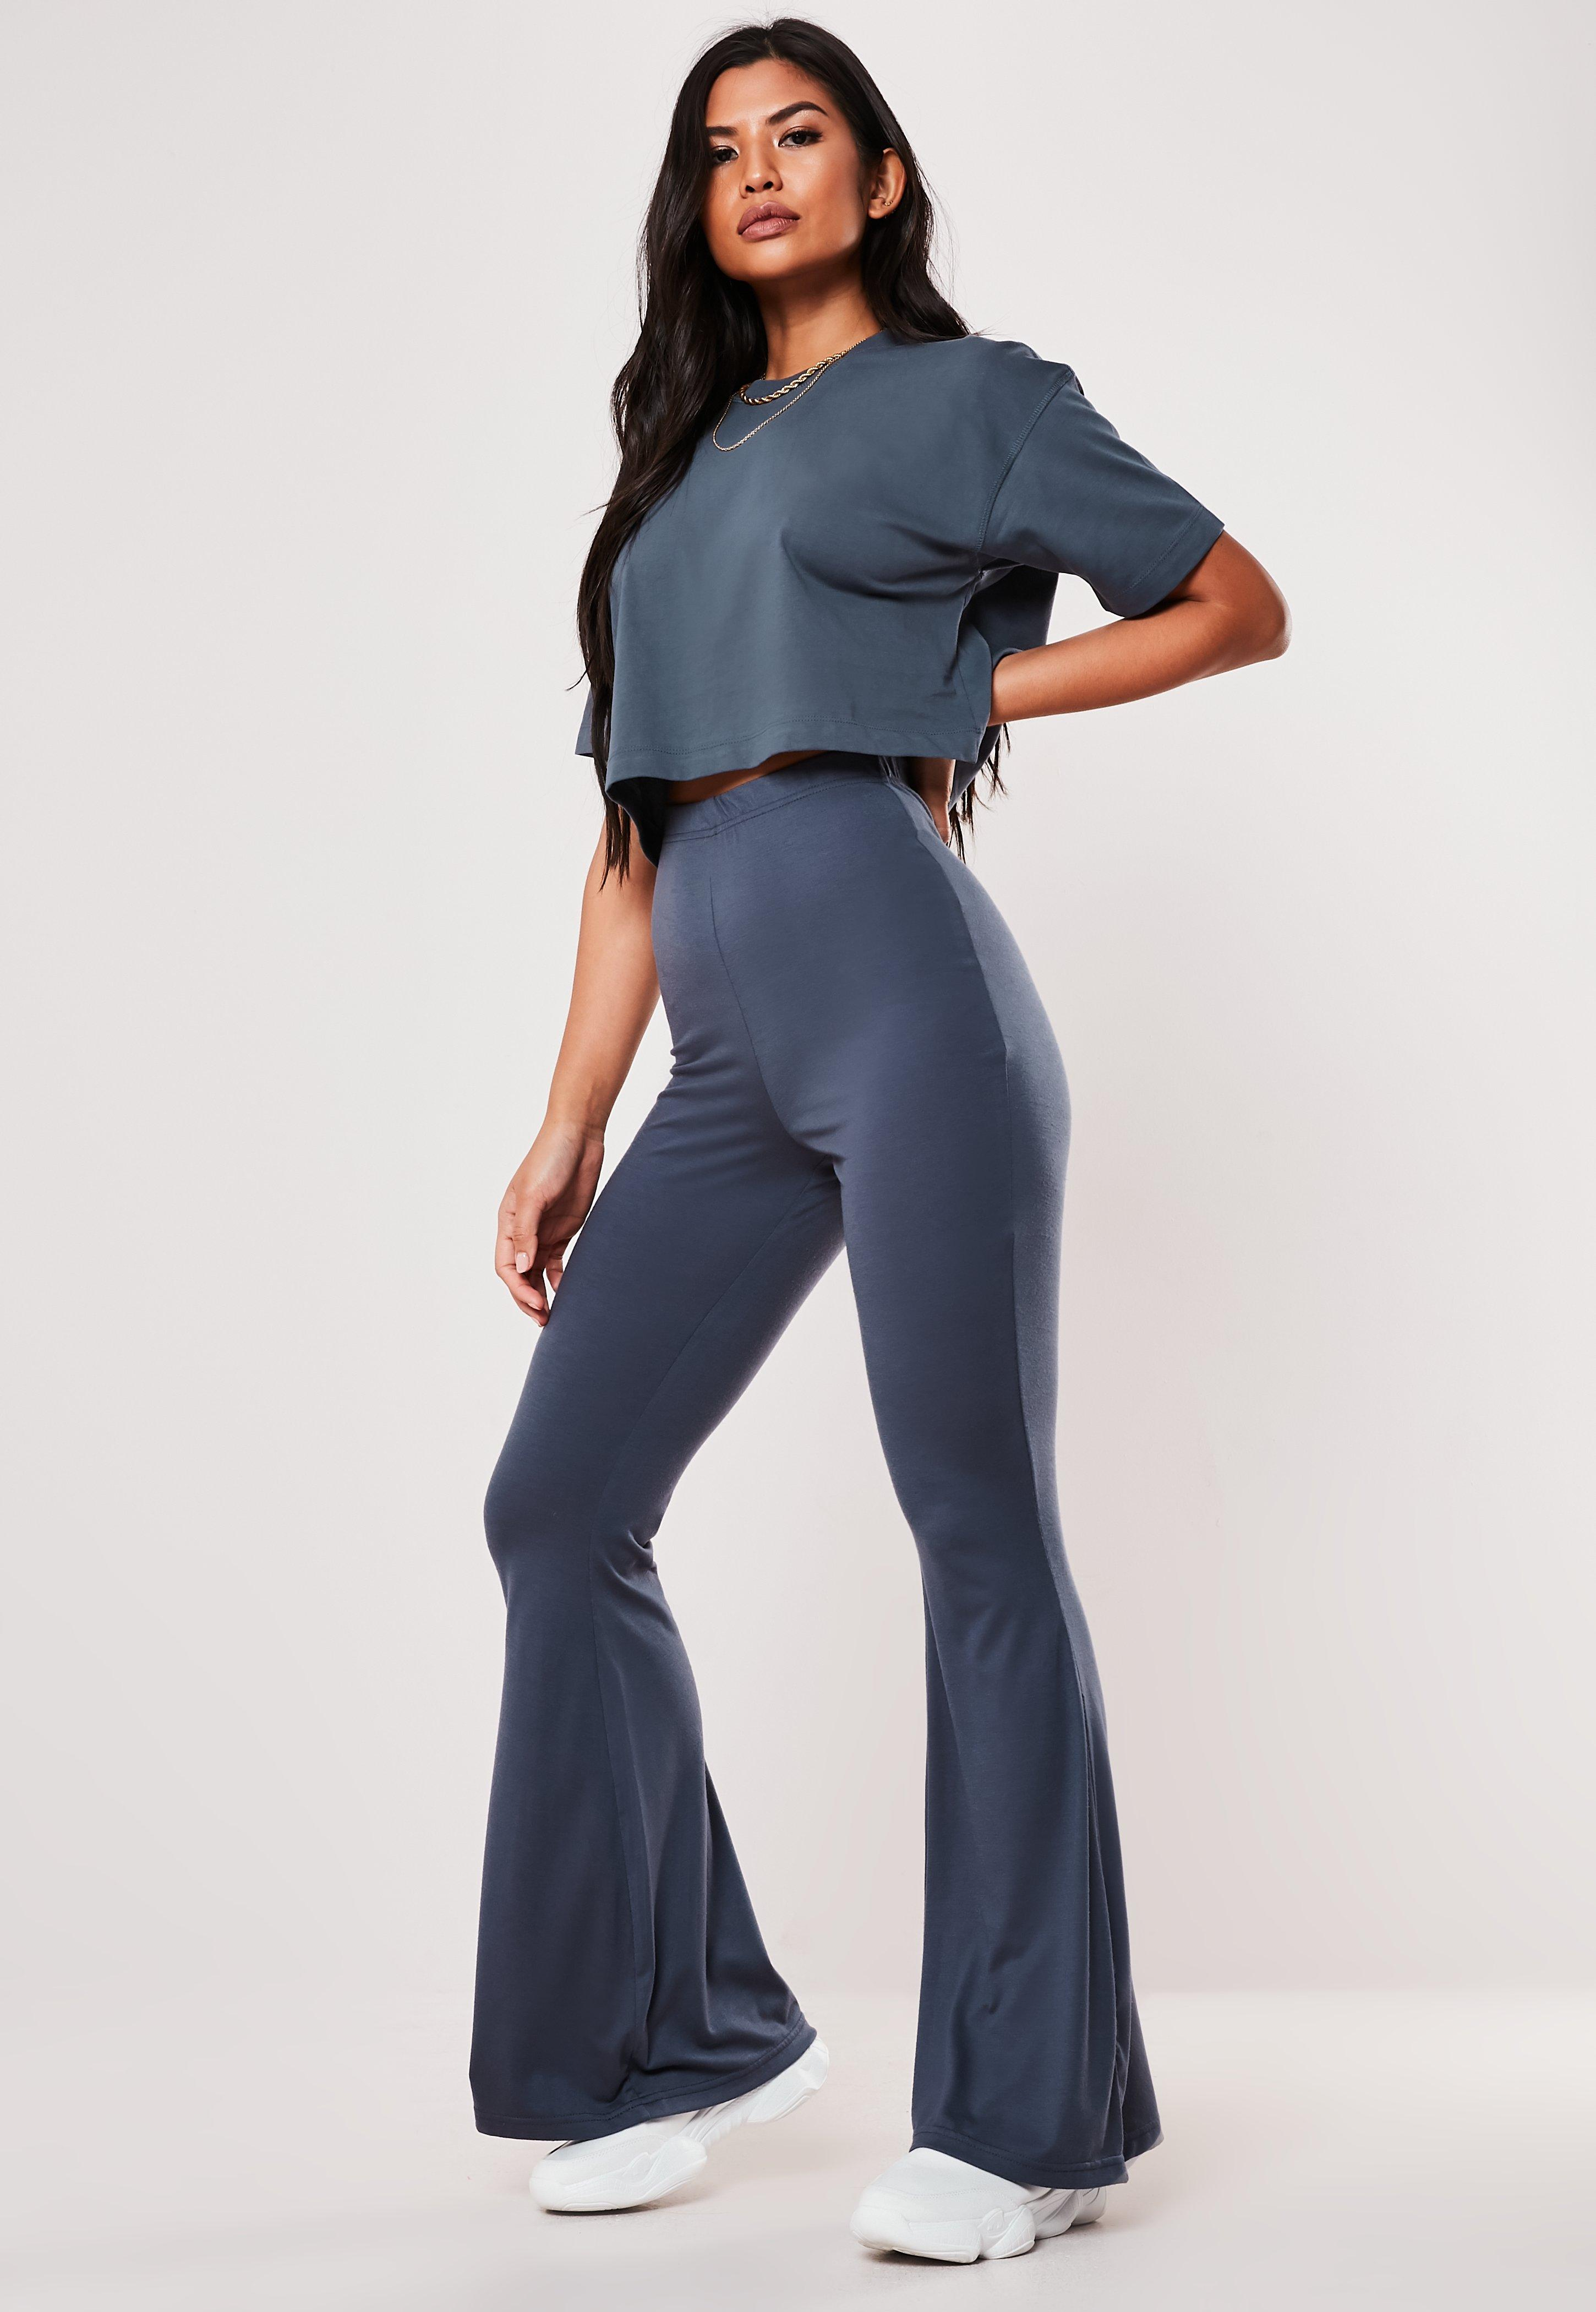 887088a129 Flared Pants - Womens High Waisted Flares - Missguided